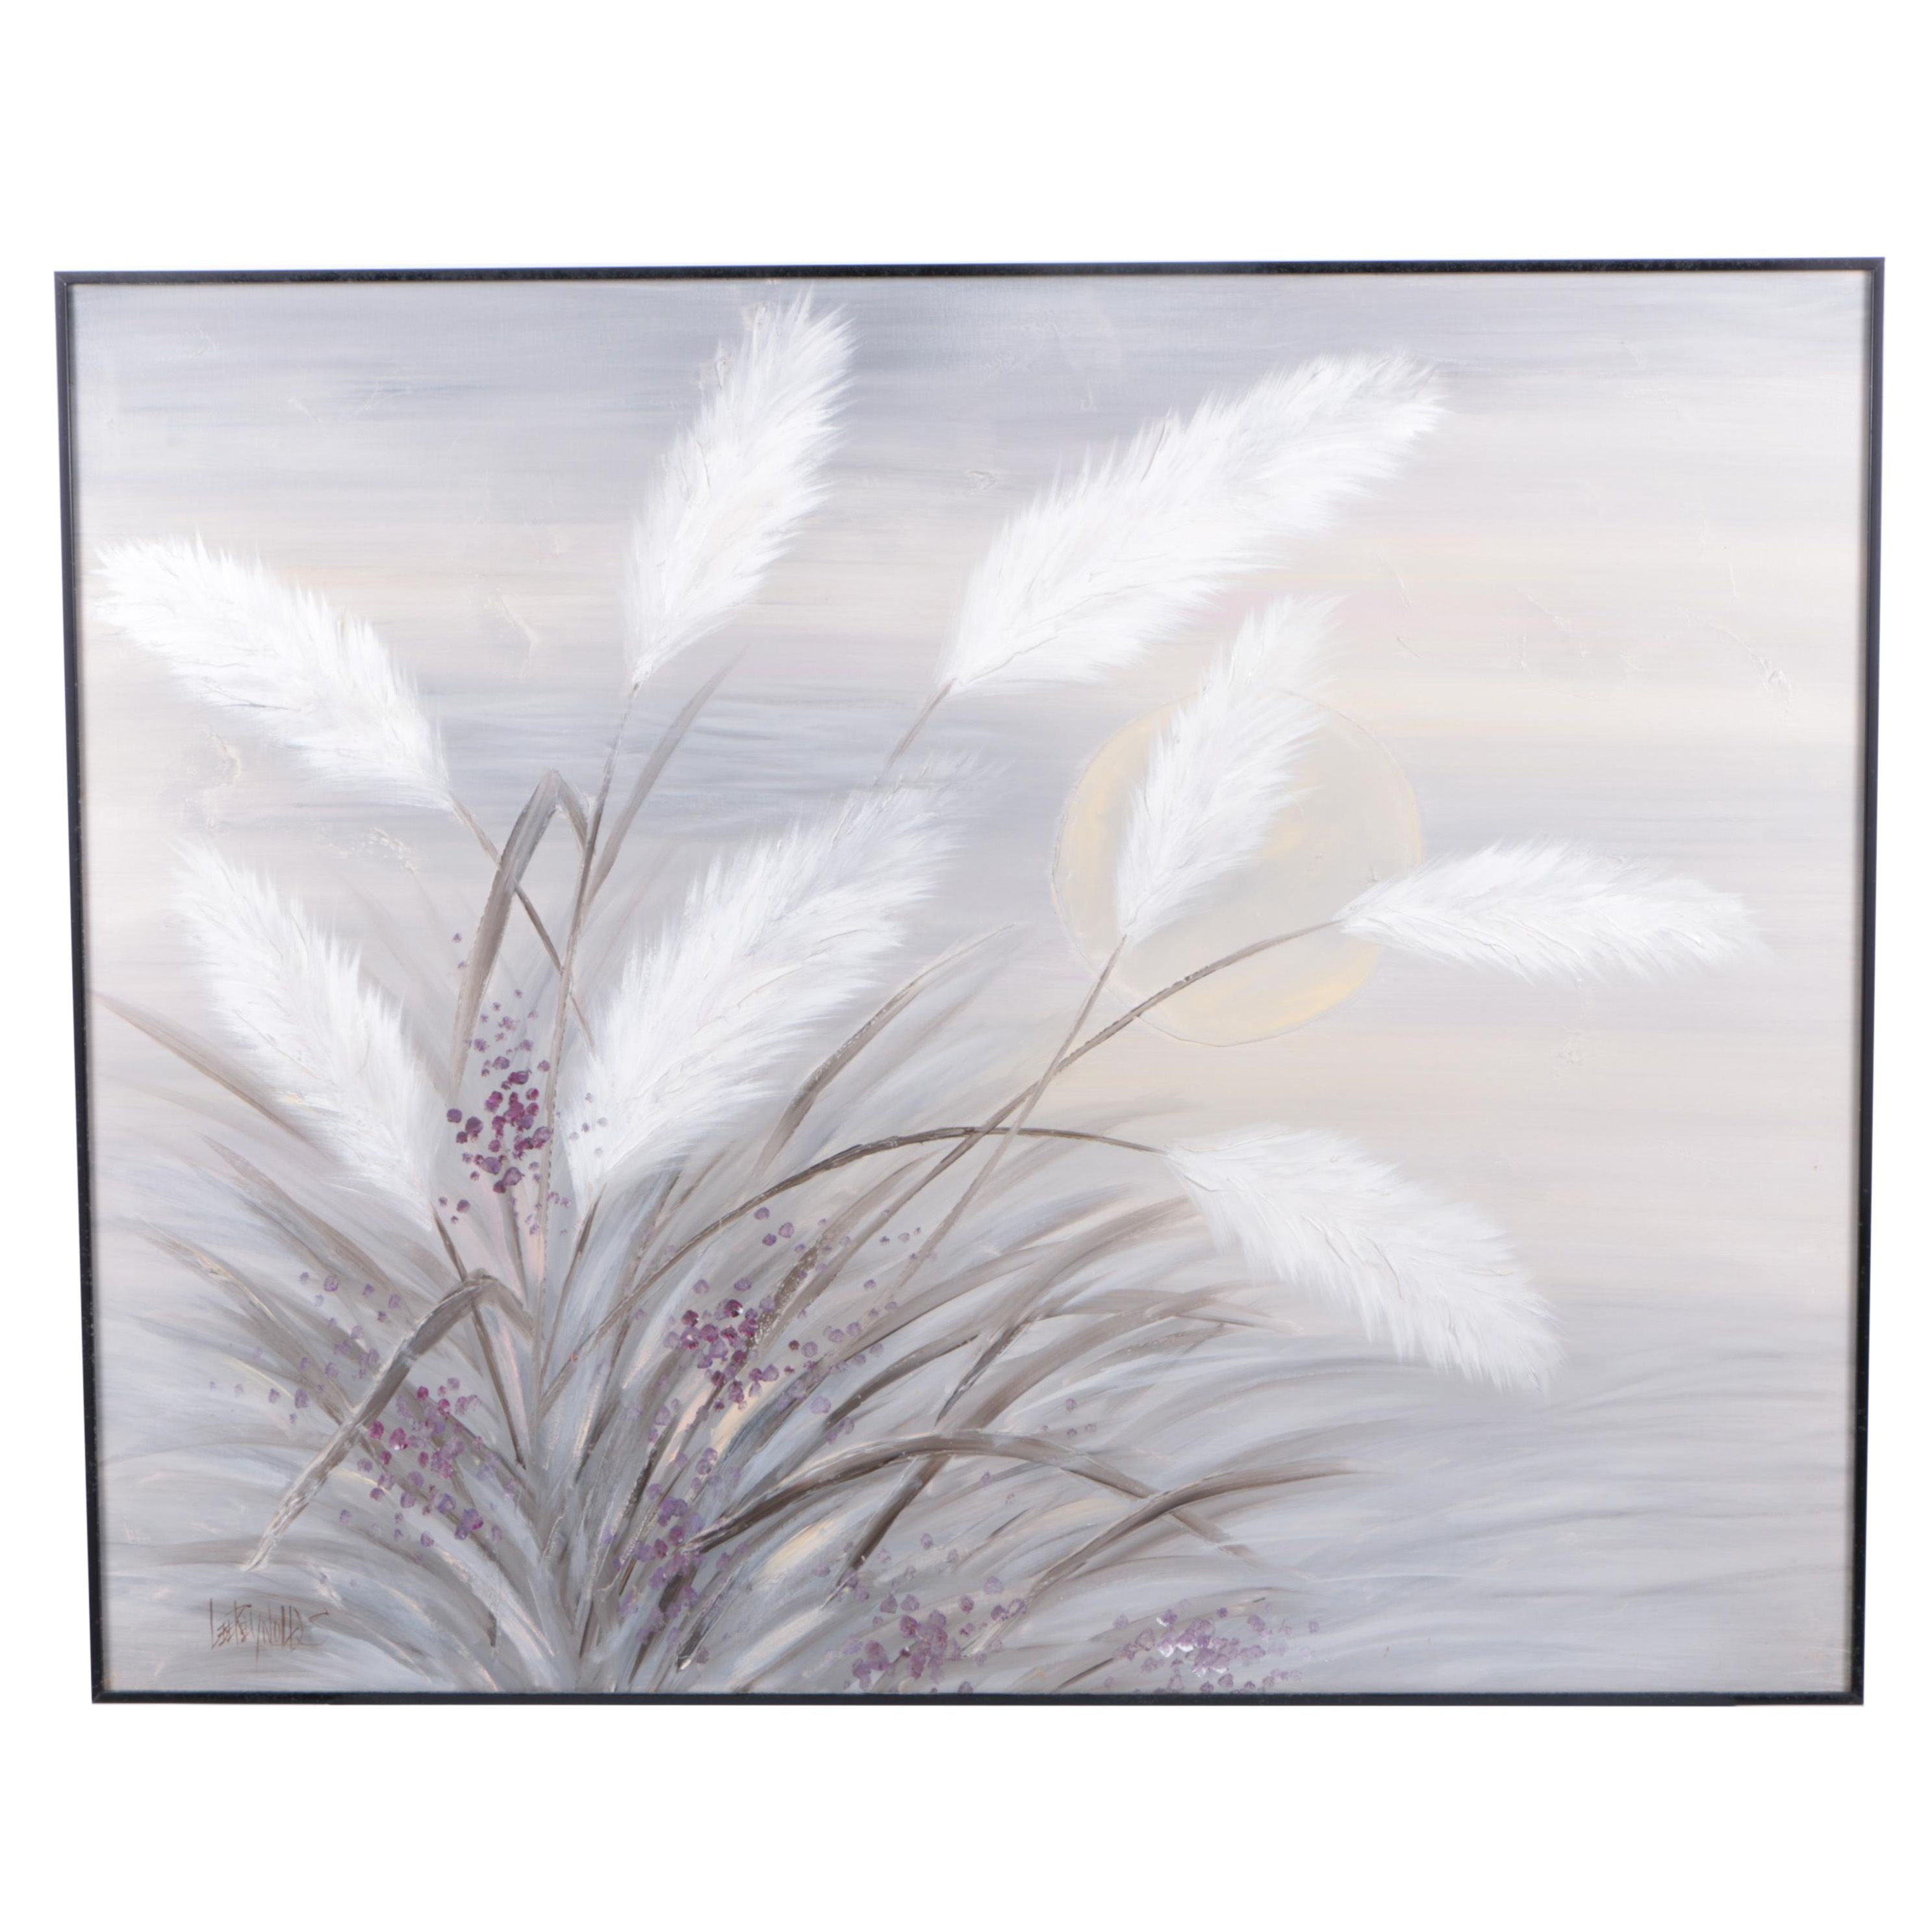 Lee Reynolds Oil Painting on Canvas of Grasses